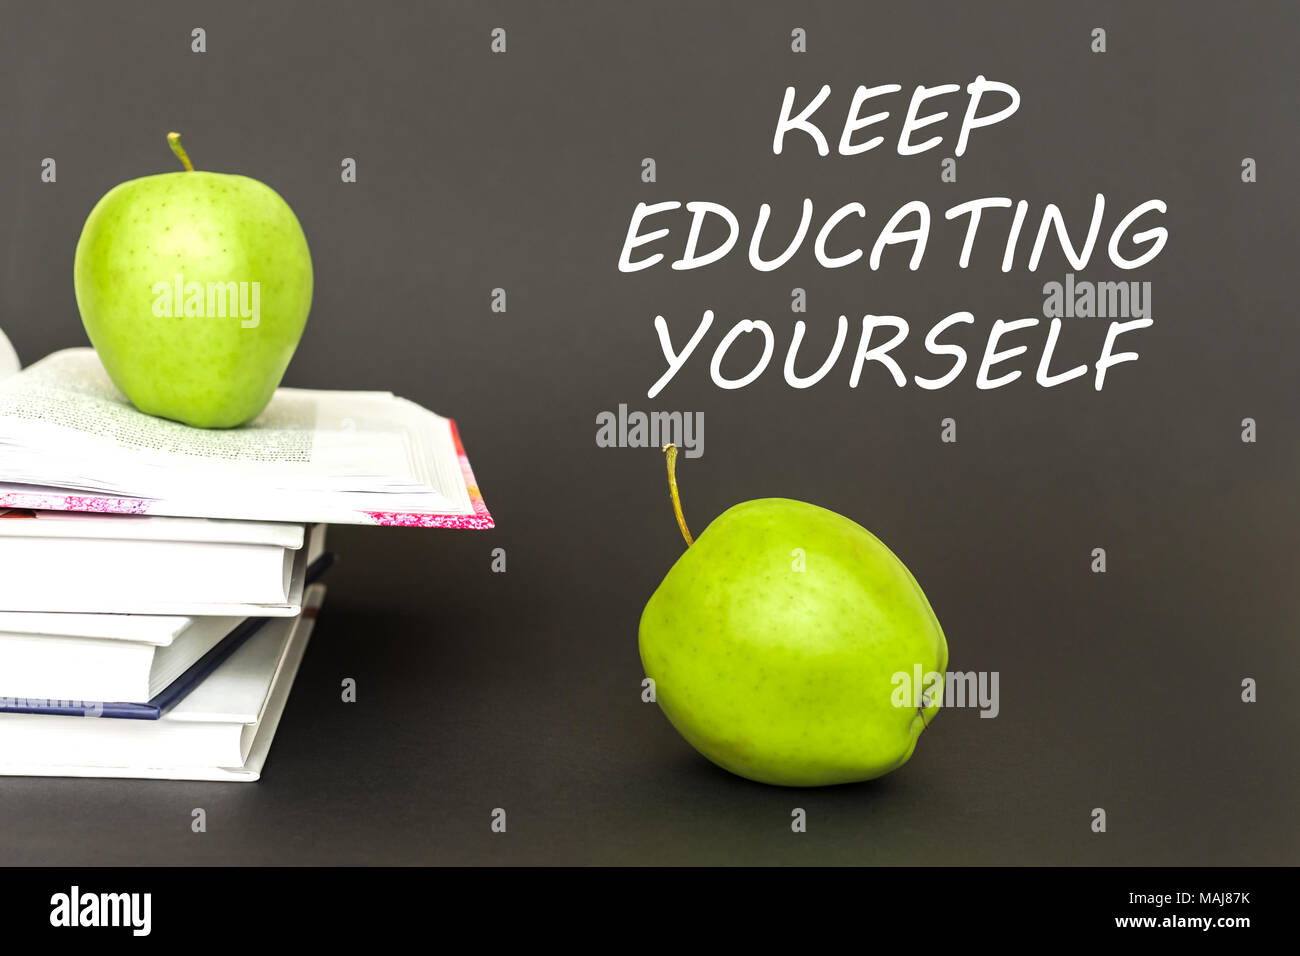 text keep educating yourself, two green apples, open books with concept - Stock Image